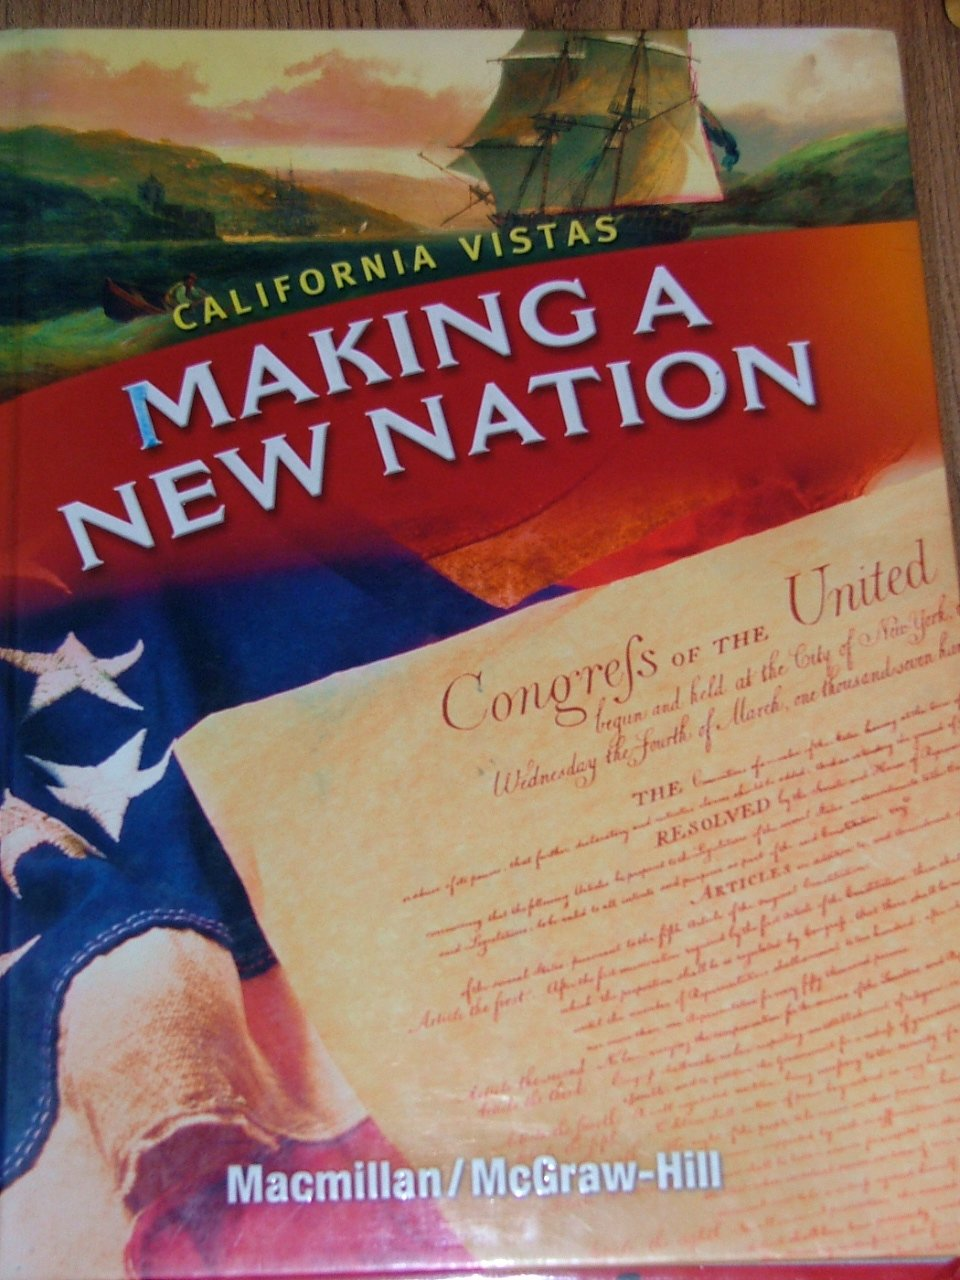 Making a new nation james a et al banks 9780021505135 amazon making a new nation james a et al banks 9780021505135 amazon books fandeluxe